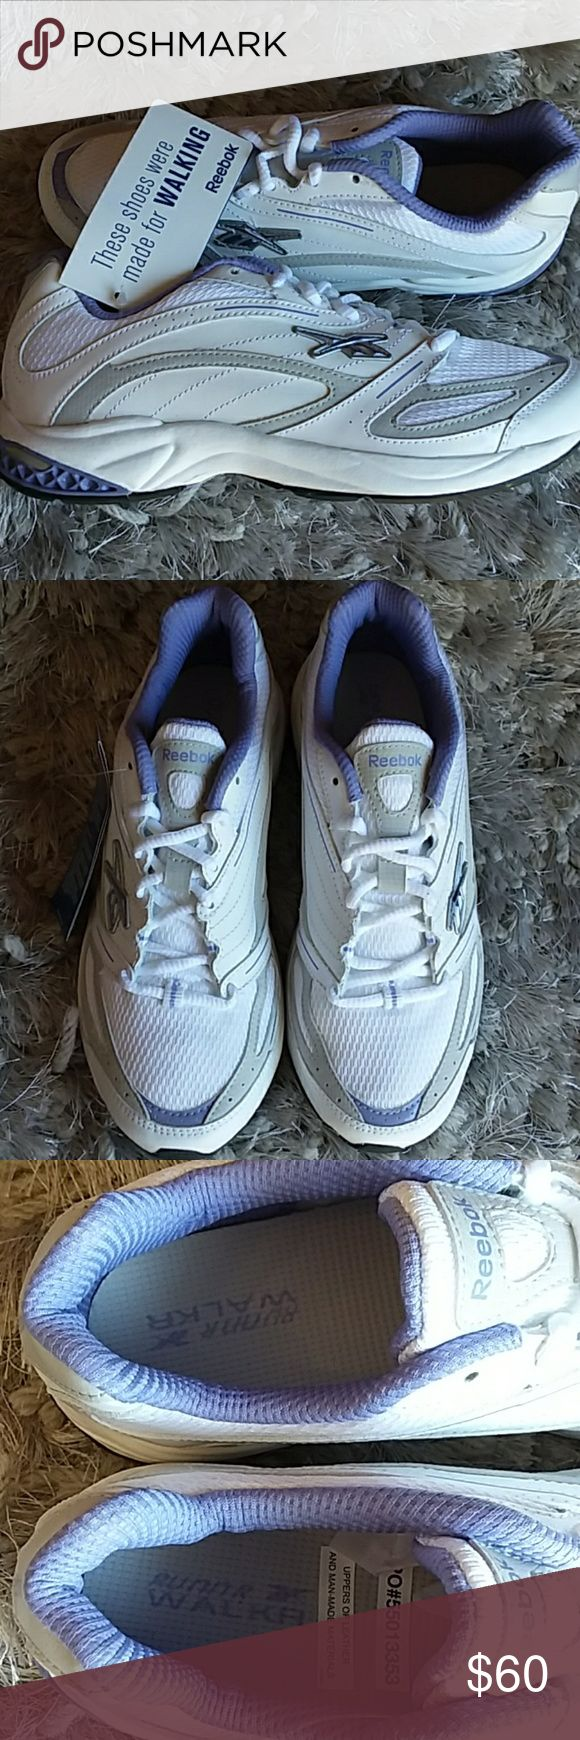 NEW Reebok leather walking shoes trainers purple Perfect pristine condition - never got to wear these.  Leather.  No box, but original interior and ad tags as pictured. Purchased for a job where I had to be standing for an entire shift. Then it was decided shoes had to be all white or black color, so I couldn't wear all my expensive shoes any longer! Please see all pics to detail condition. I'm pretty firm on my price for these shoes. Size 7.5 Reebok Shoes Athletic Shoes